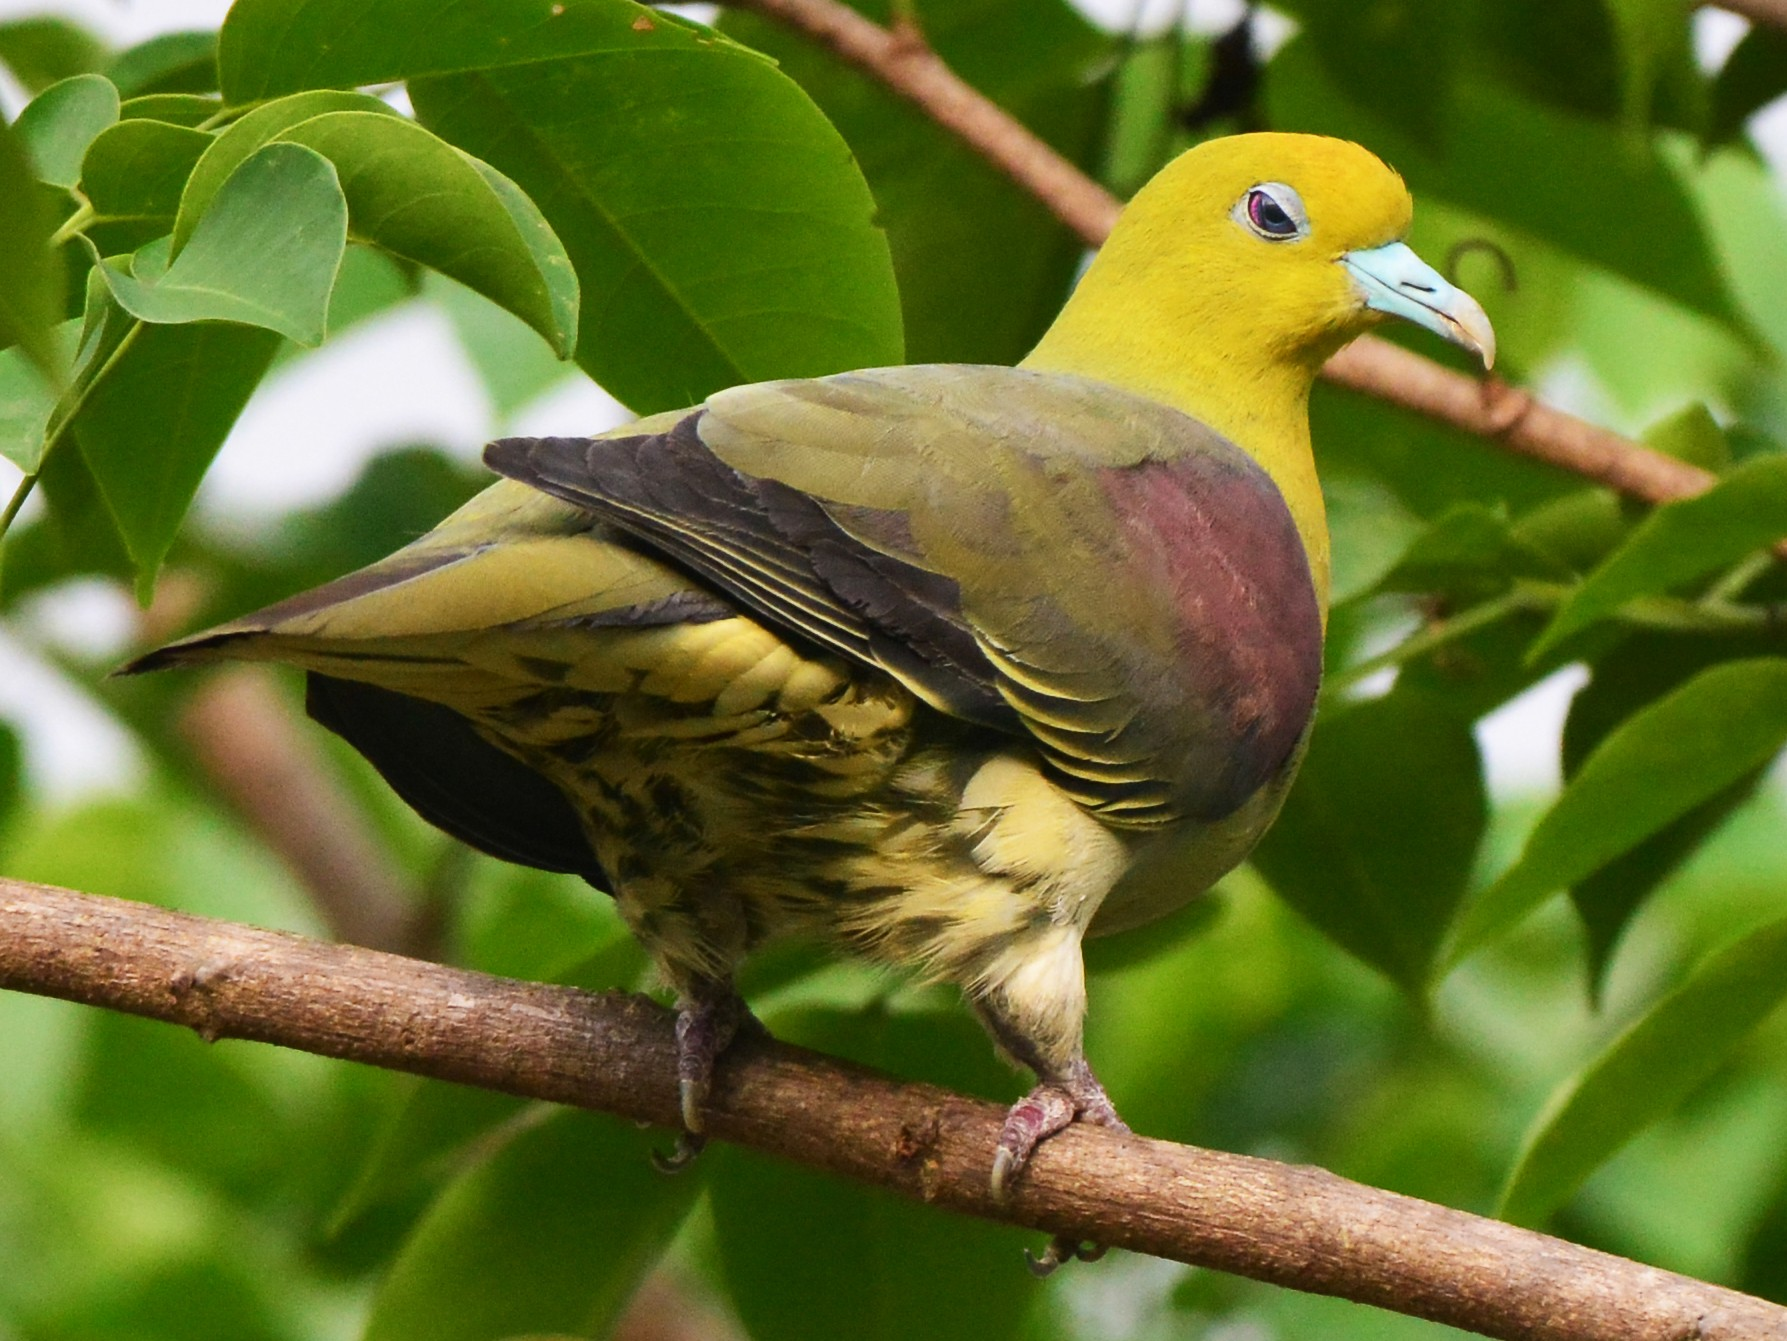 White-bellied Green-Pigeon - Jhih-Weit (志偉) TSAI (蔡)